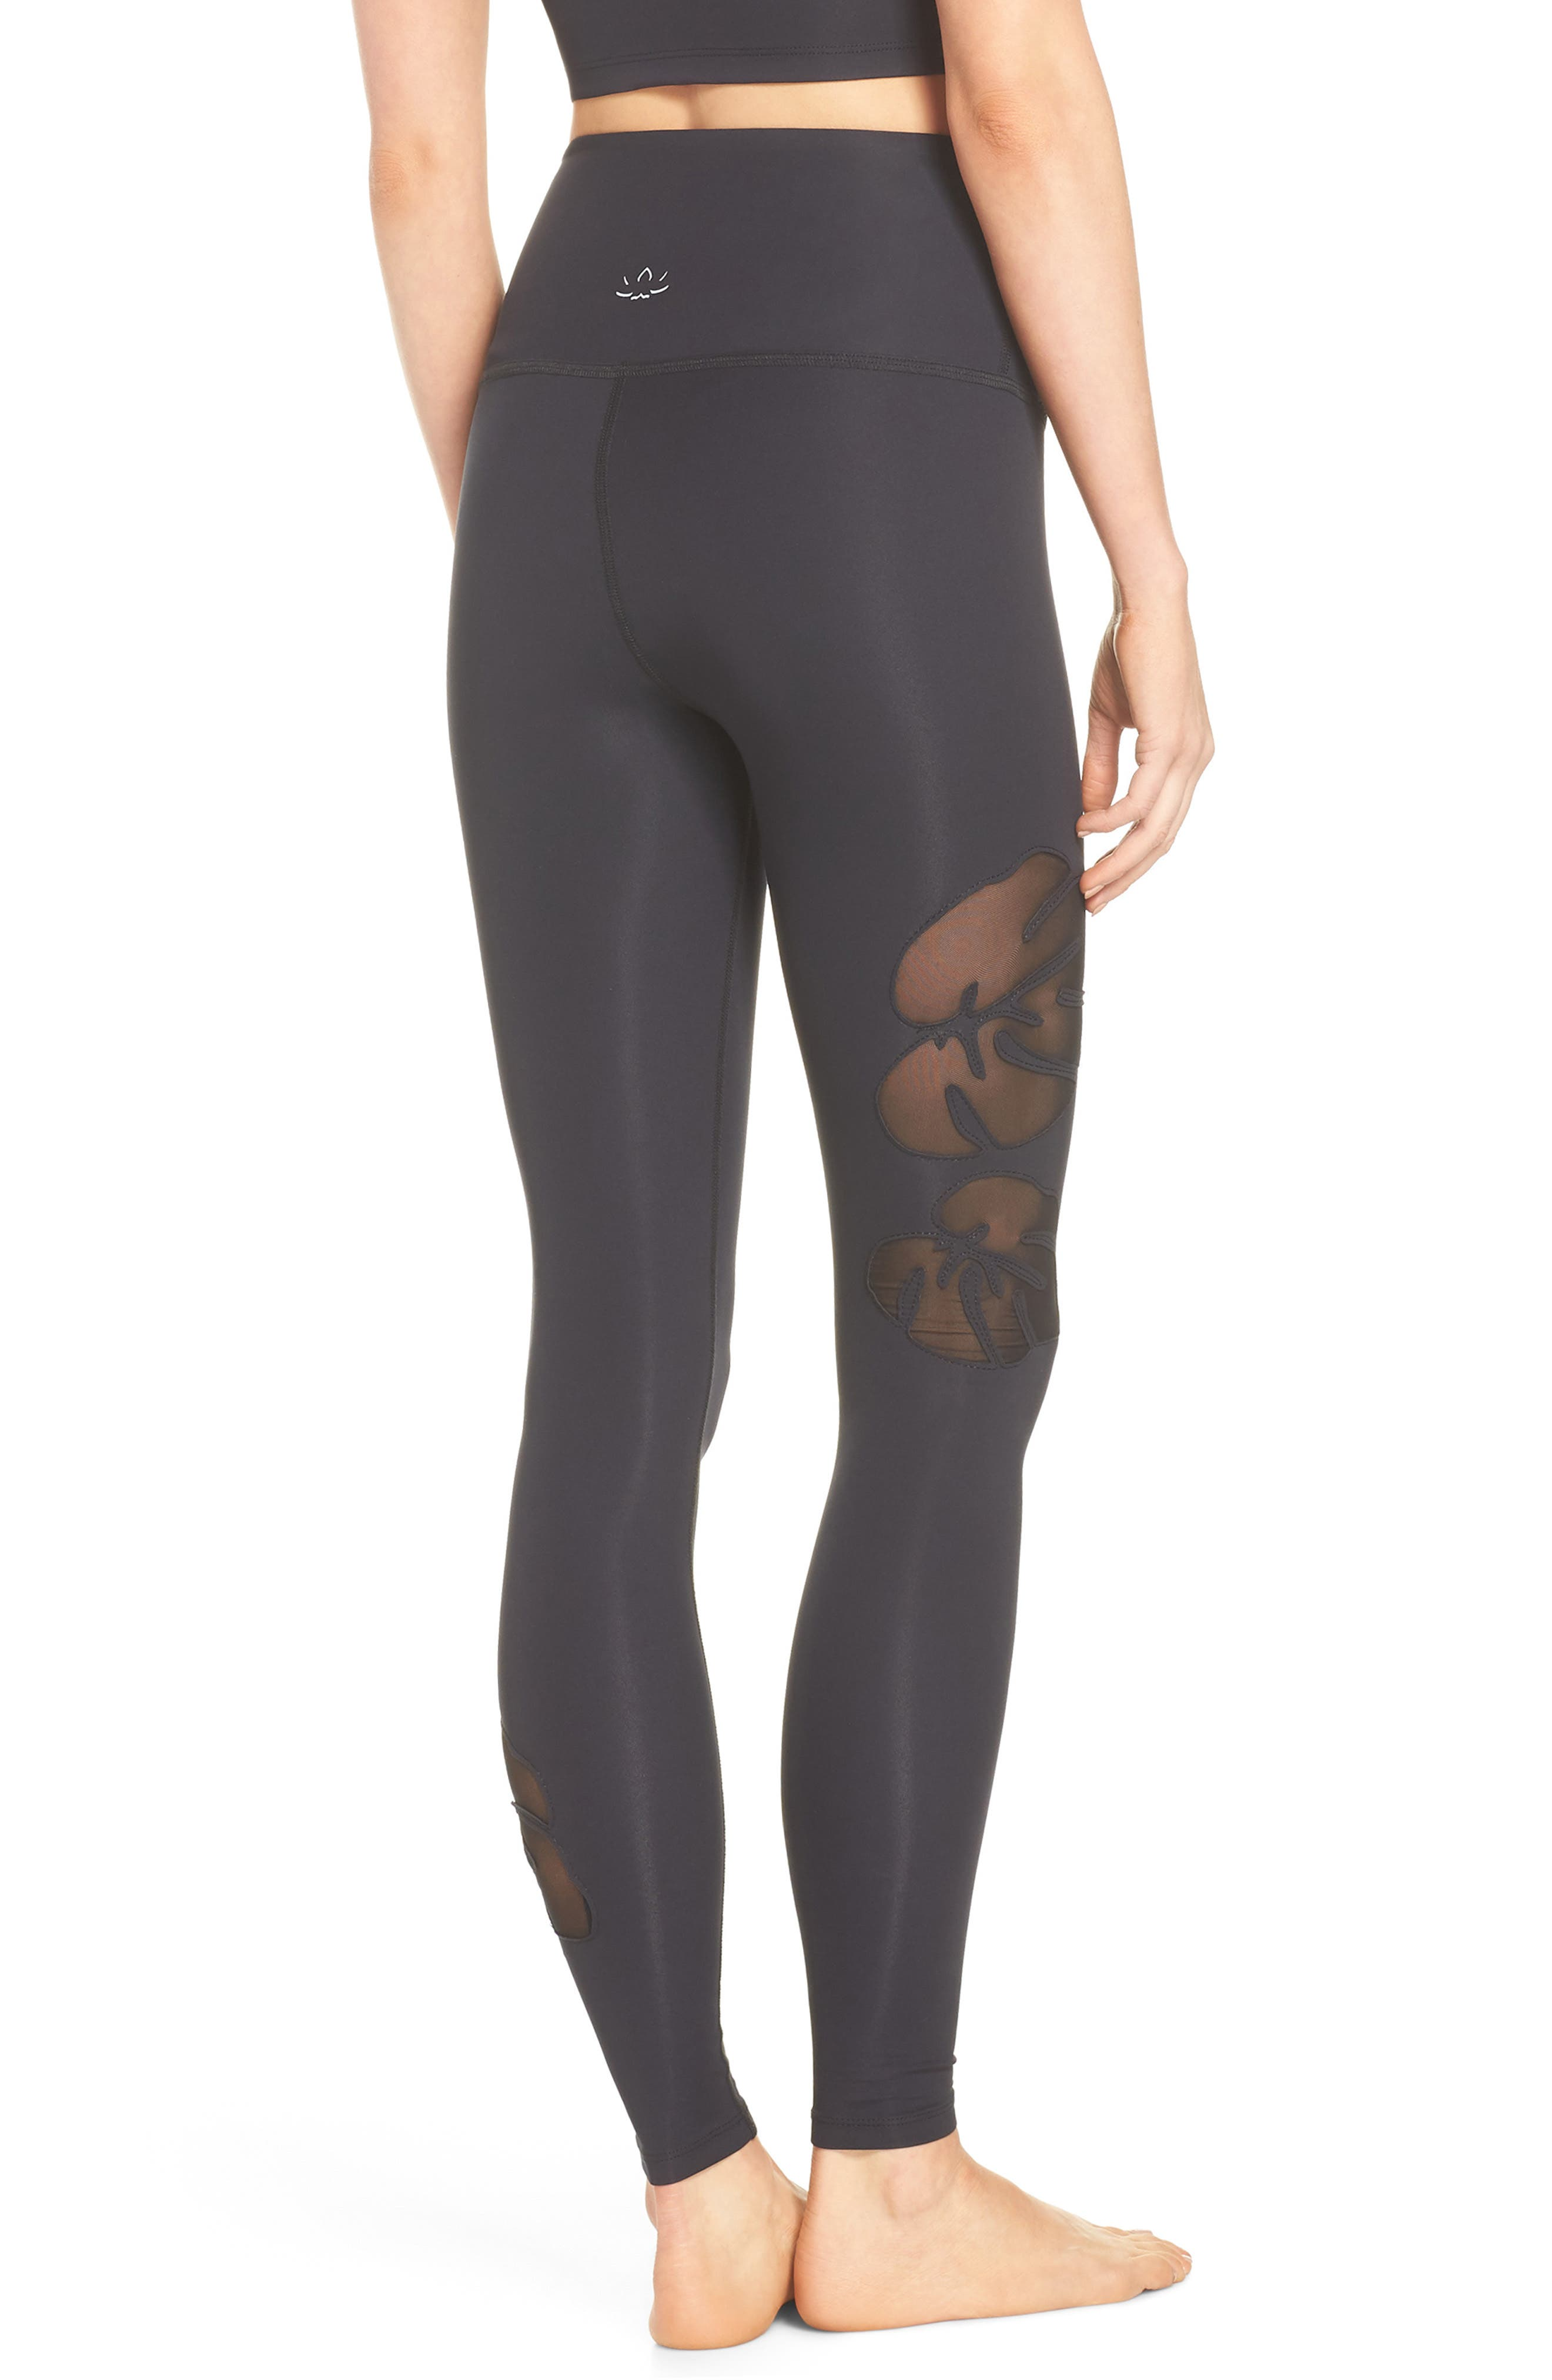 Take Leaf High Waist Leggings,                             Alternate thumbnail 2, color,                             Black